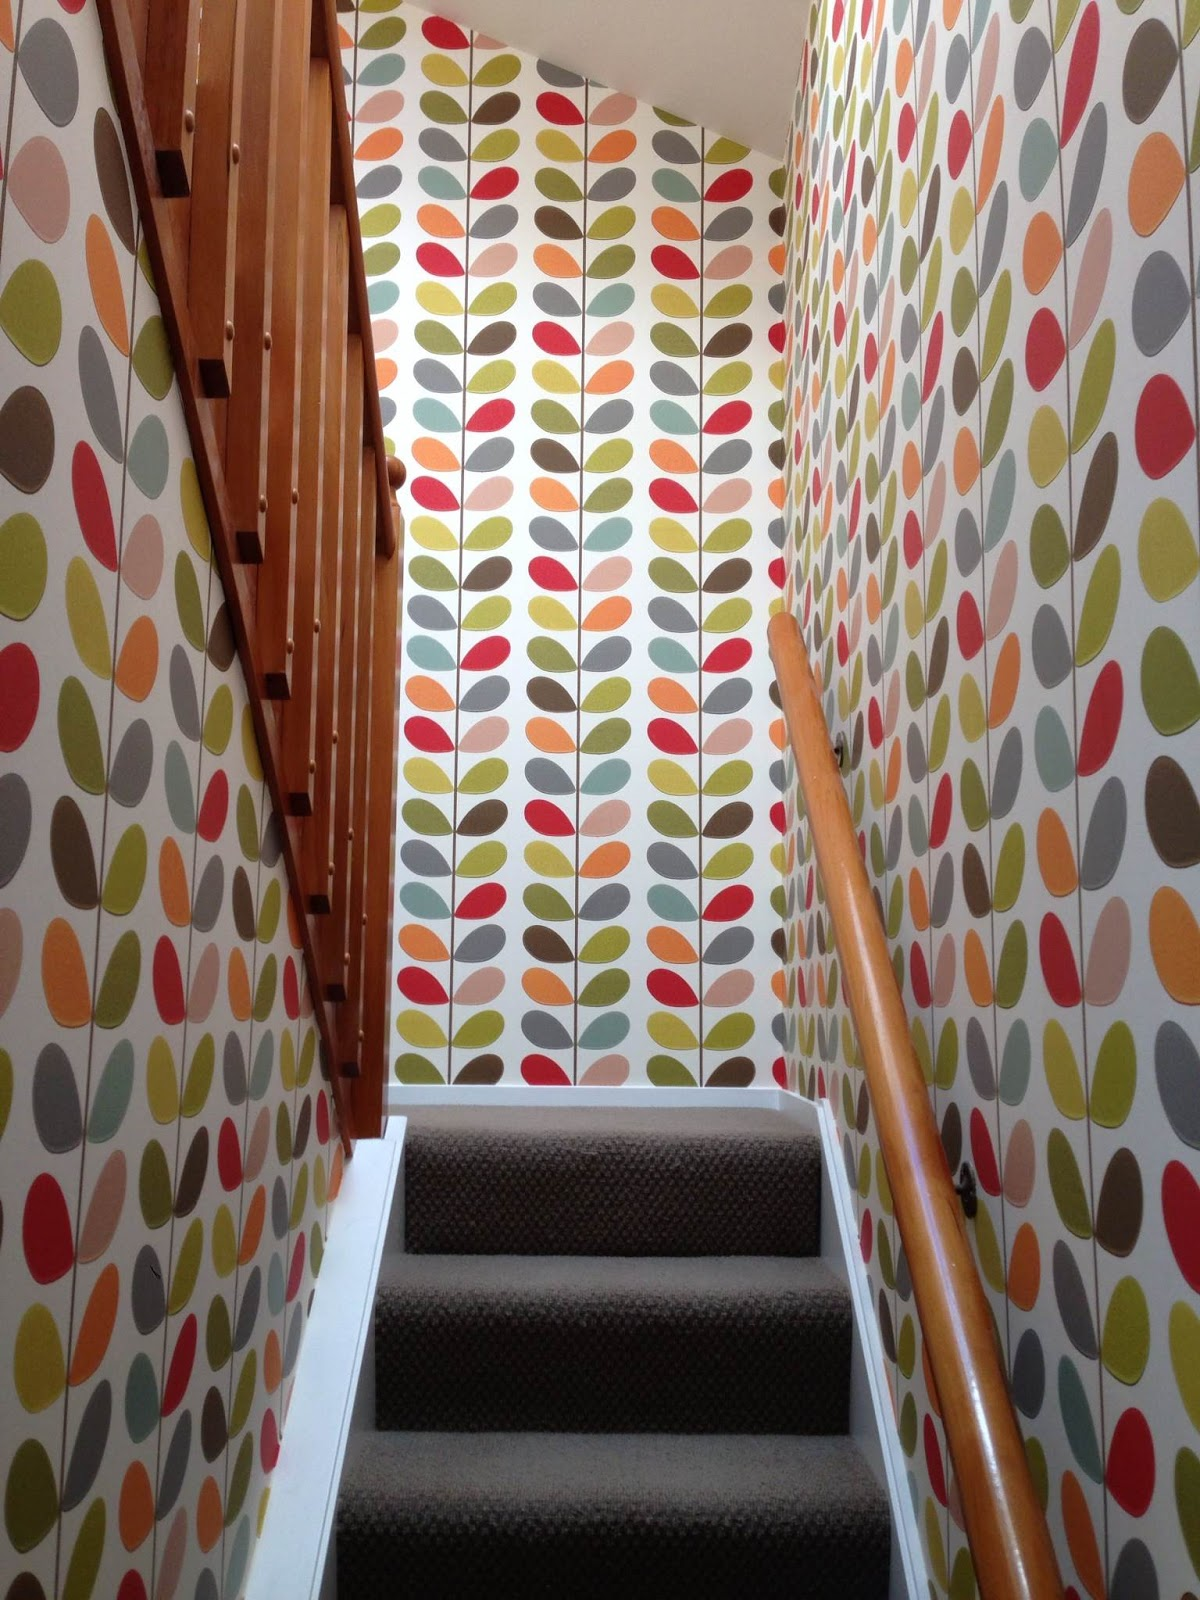 esdesign an orla kiely stairwell. Black Bedroom Furniture Sets. Home Design Ideas